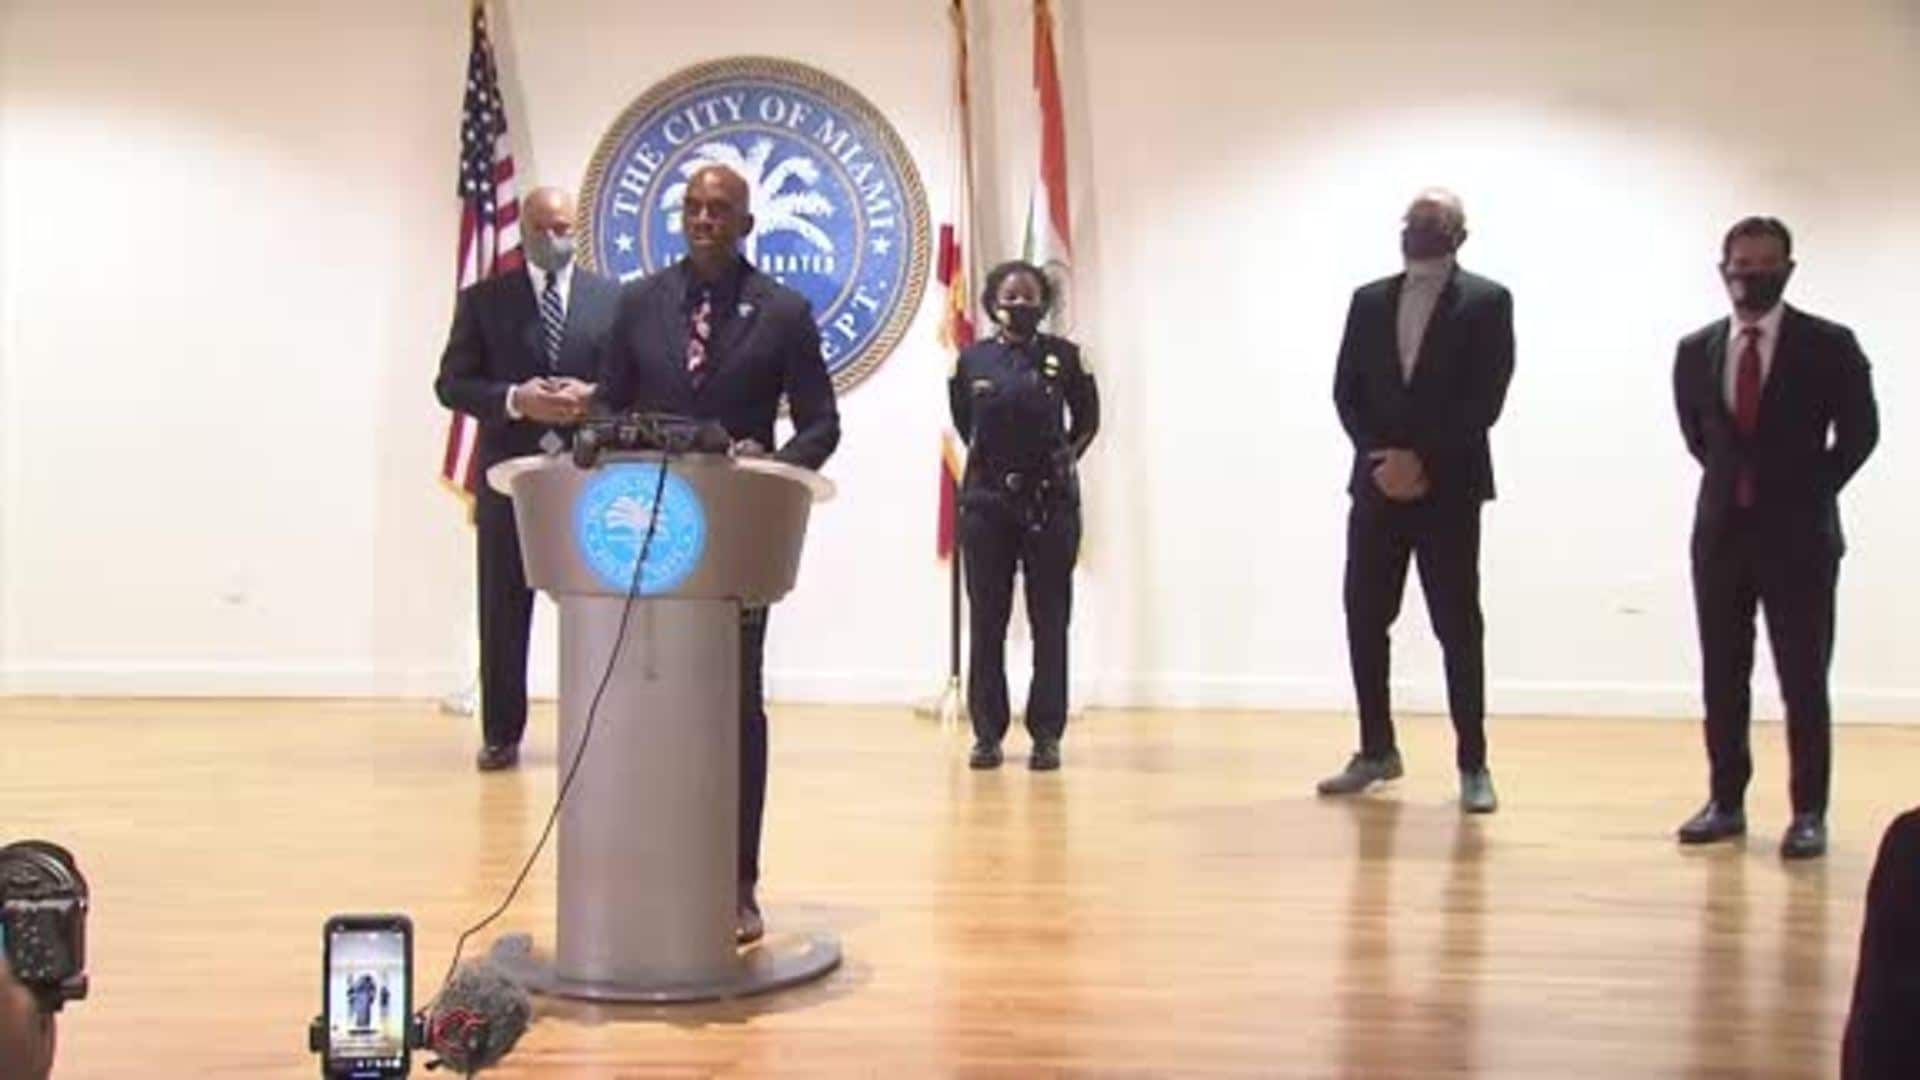 Full Press Conference: HEAT, Miami PD and D2C Announce Partnership